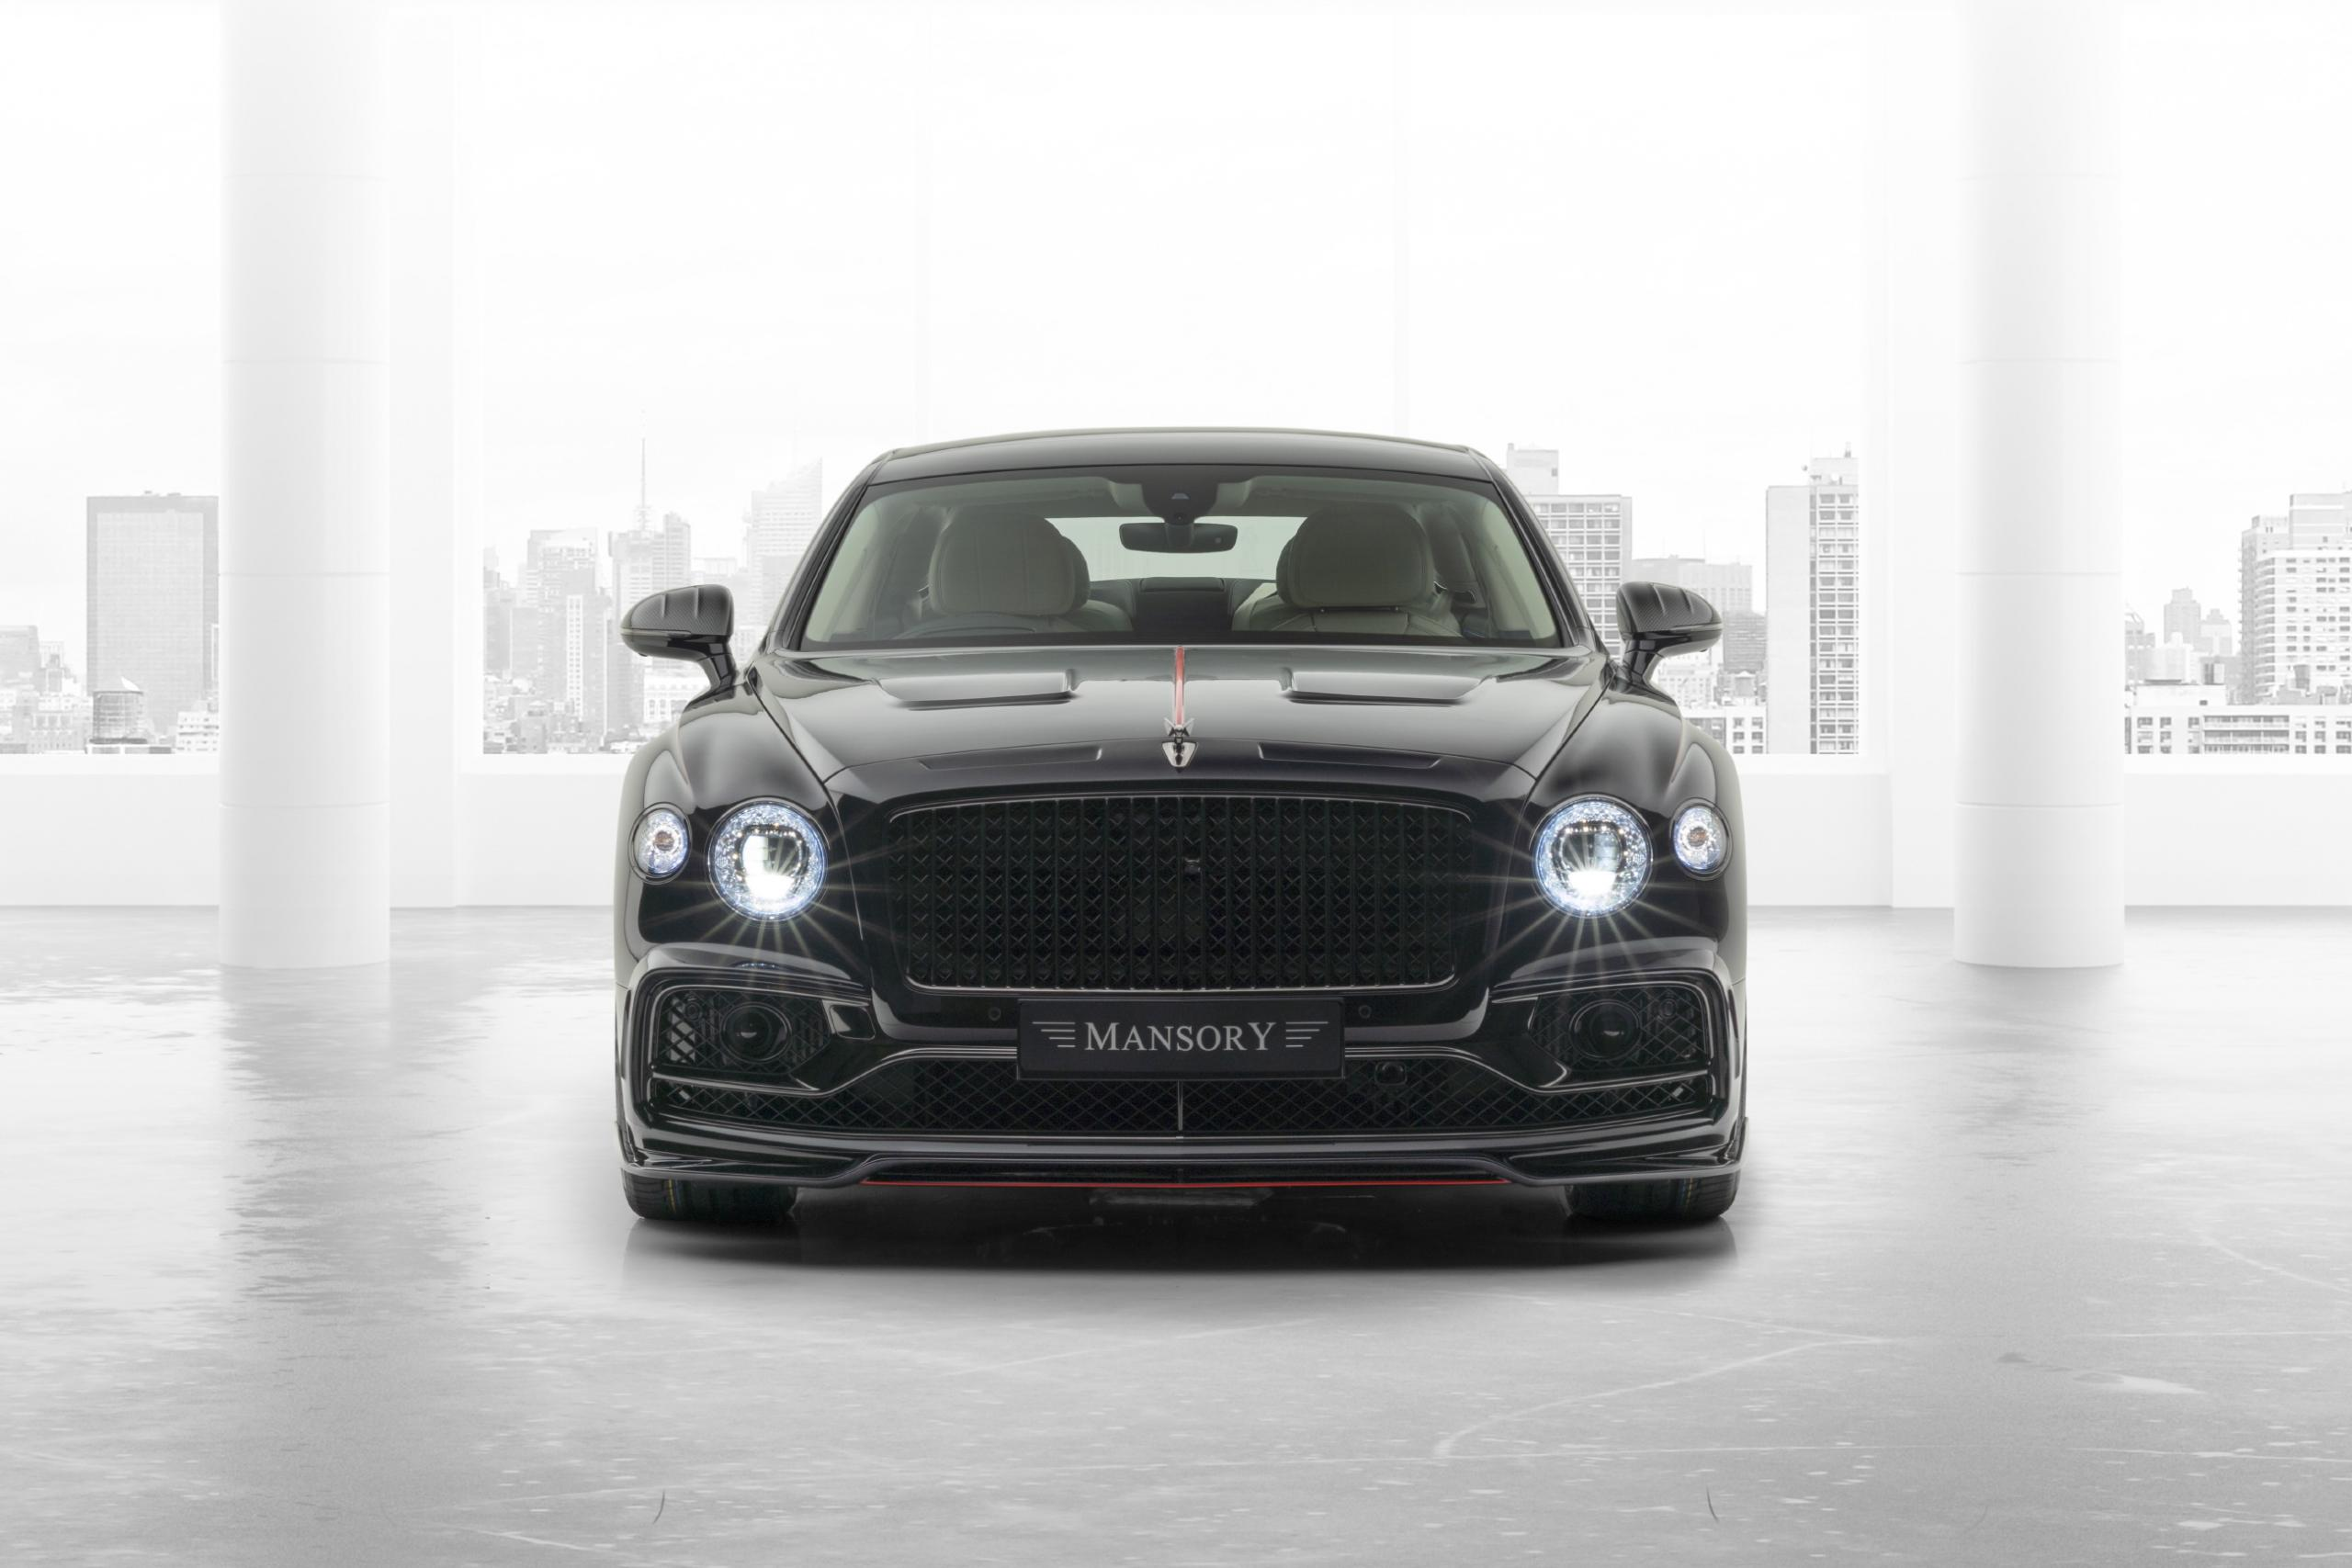 mansory bentley flying spur body kit front end front bumper